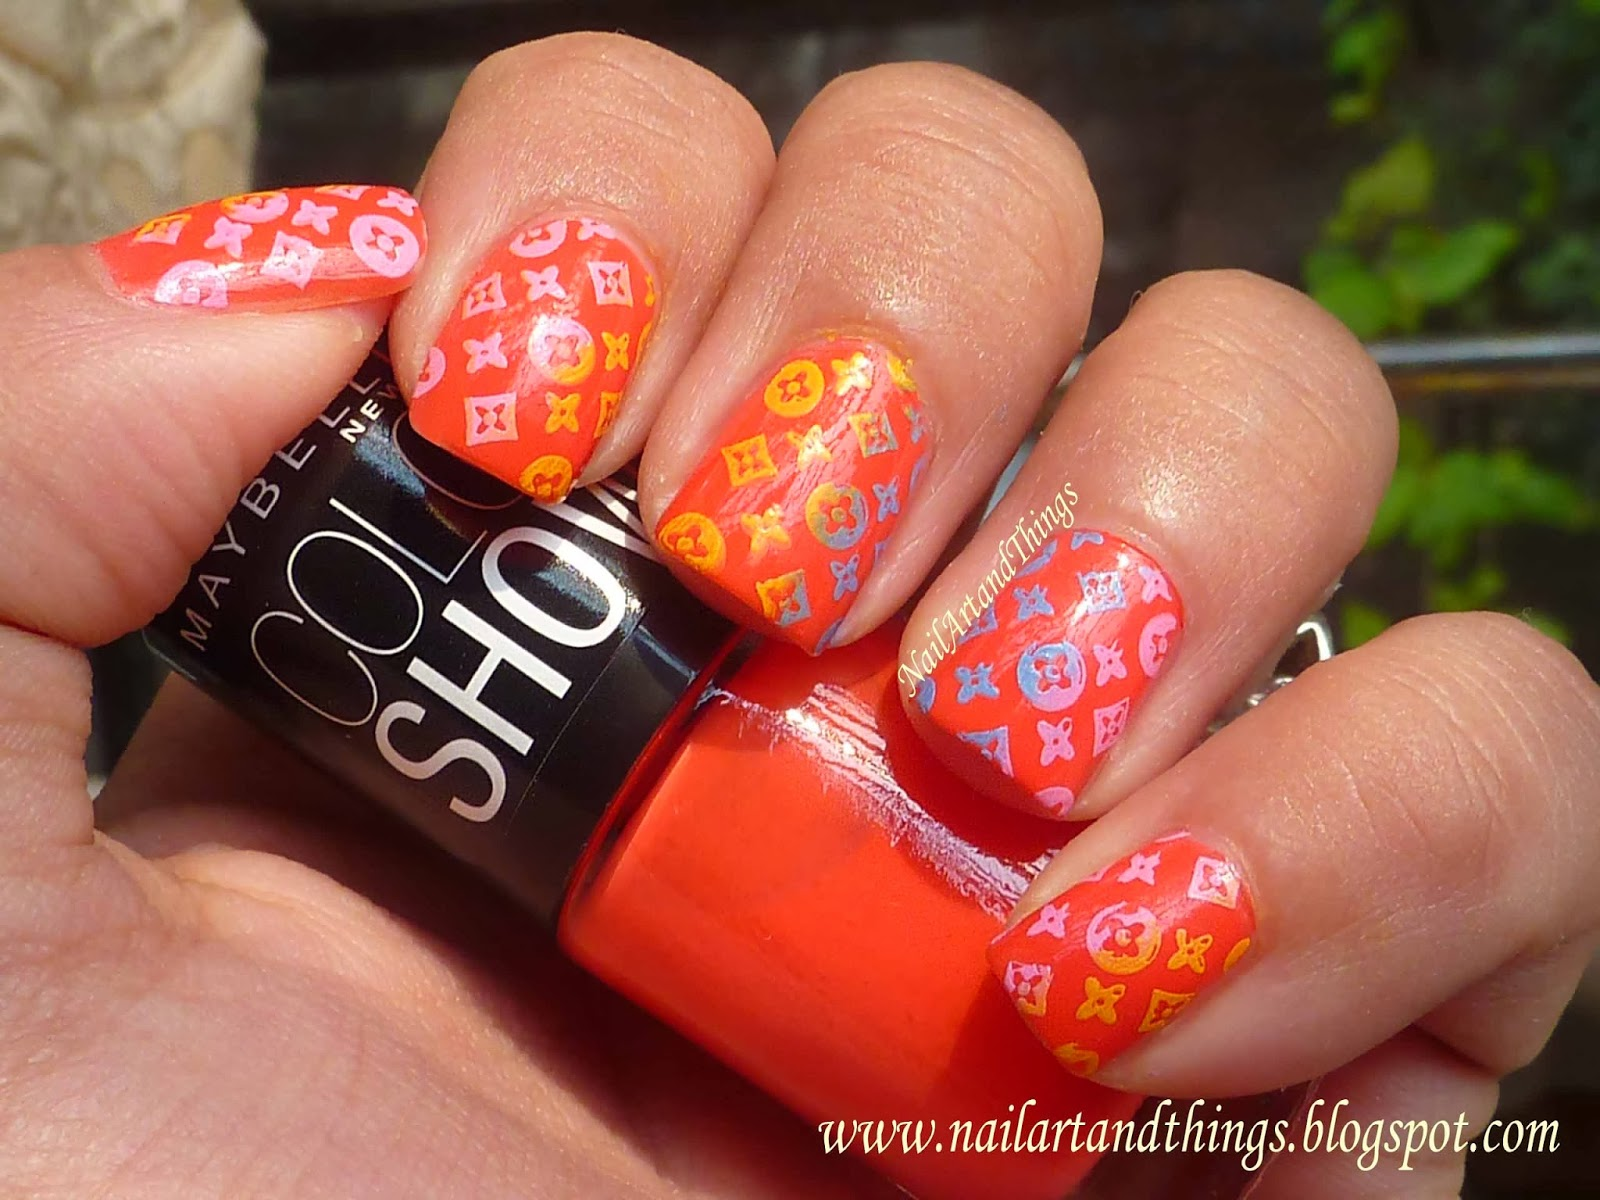 NailArt and Things: Designer Nails: Multi Color Stamping